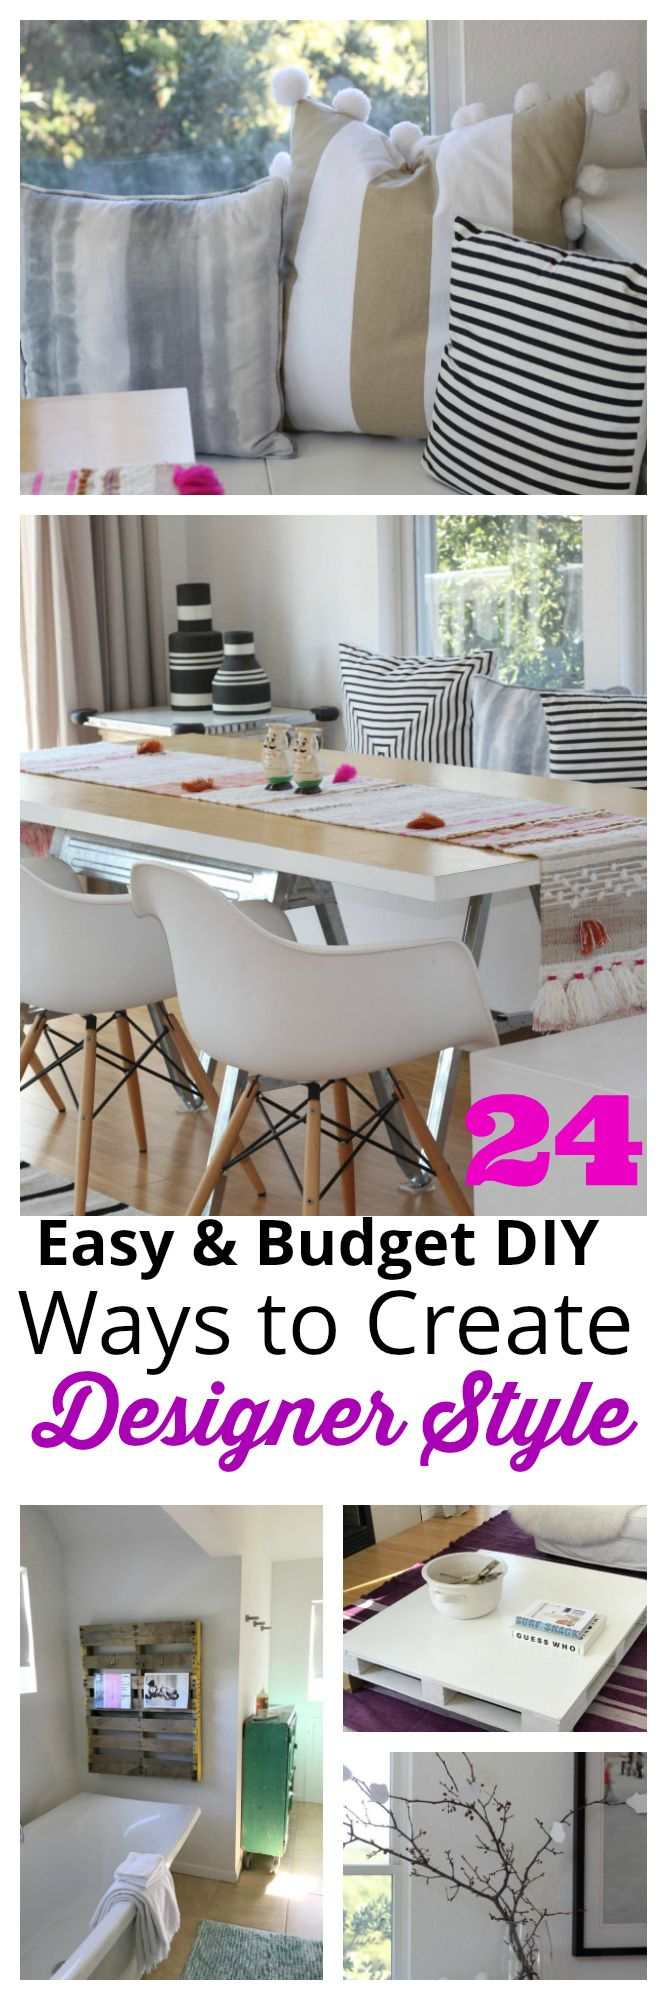 24 easy DIY ways to create designer Scandinavian minimalist style when you're on a budget.